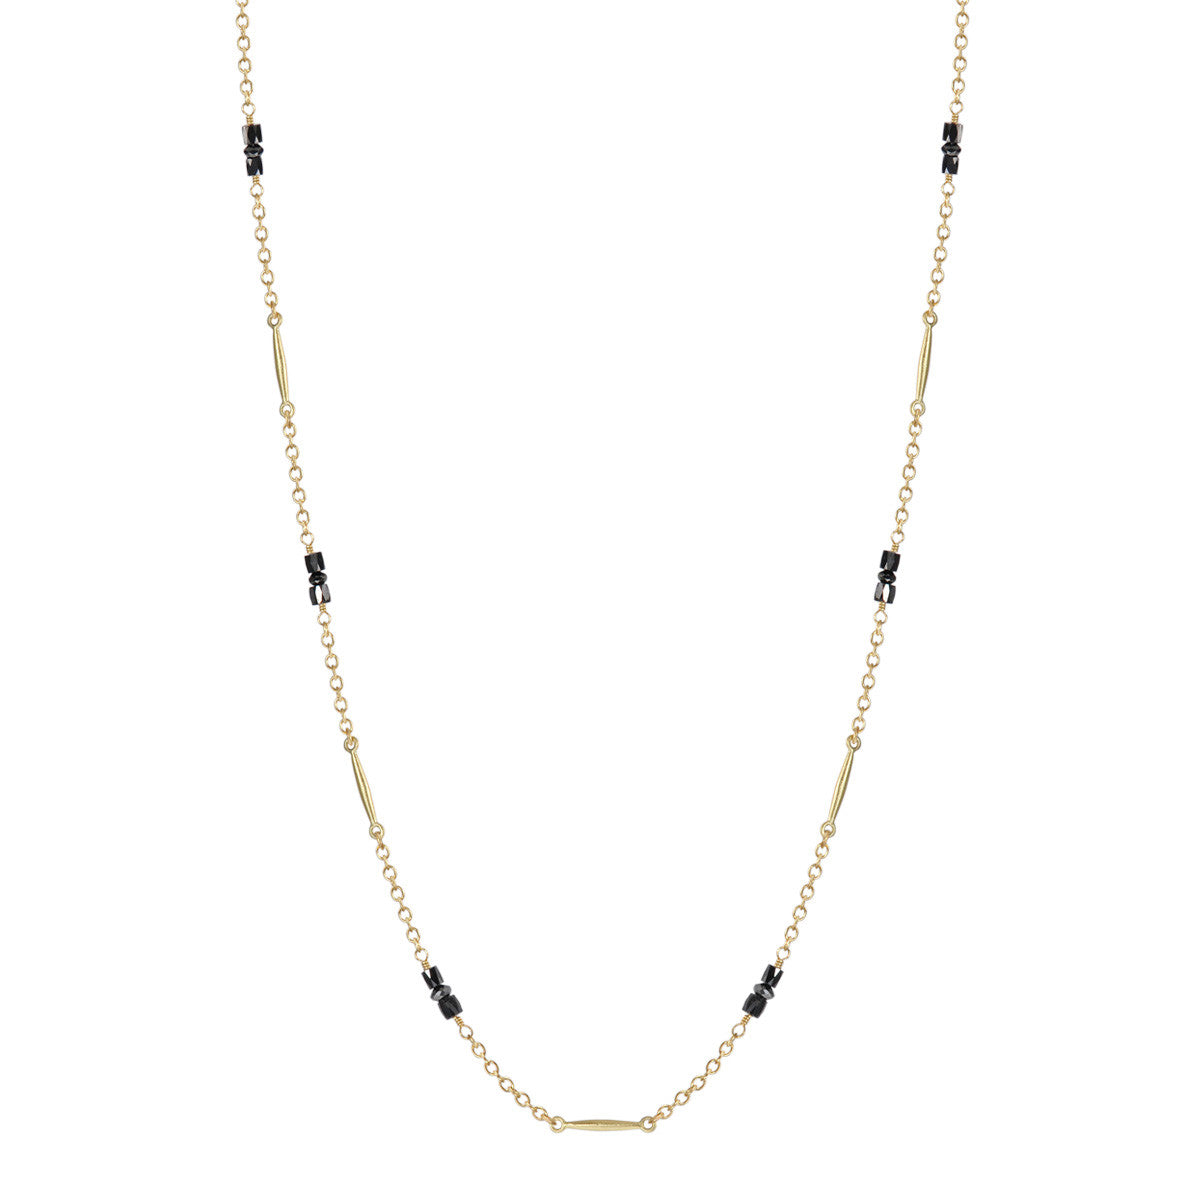 18K Gold Lure Necklace with Black Diamonds